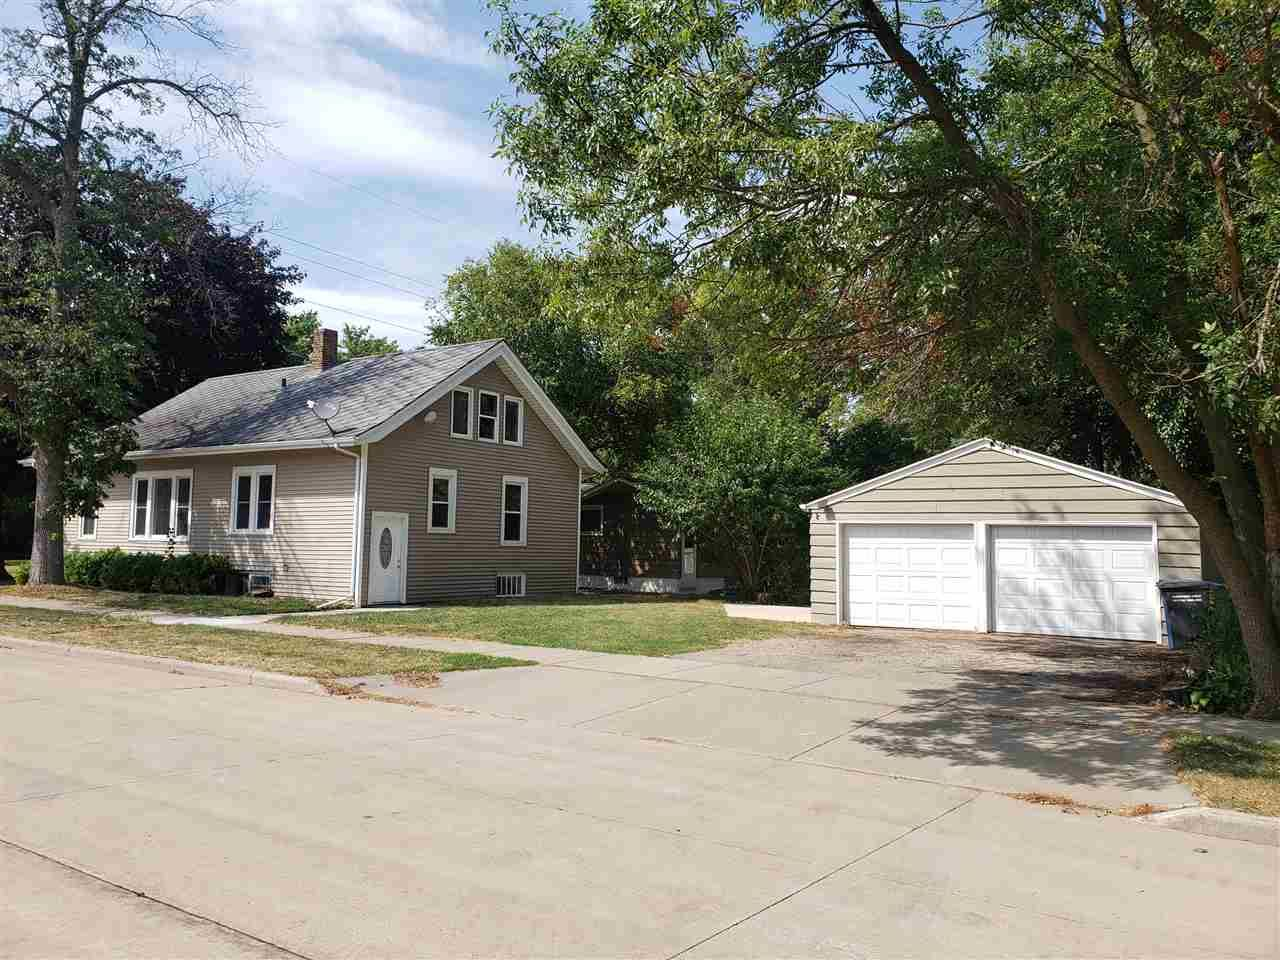 1000 GRAND Street, Oshkosh, WI 54901 - MLS#: 50228326